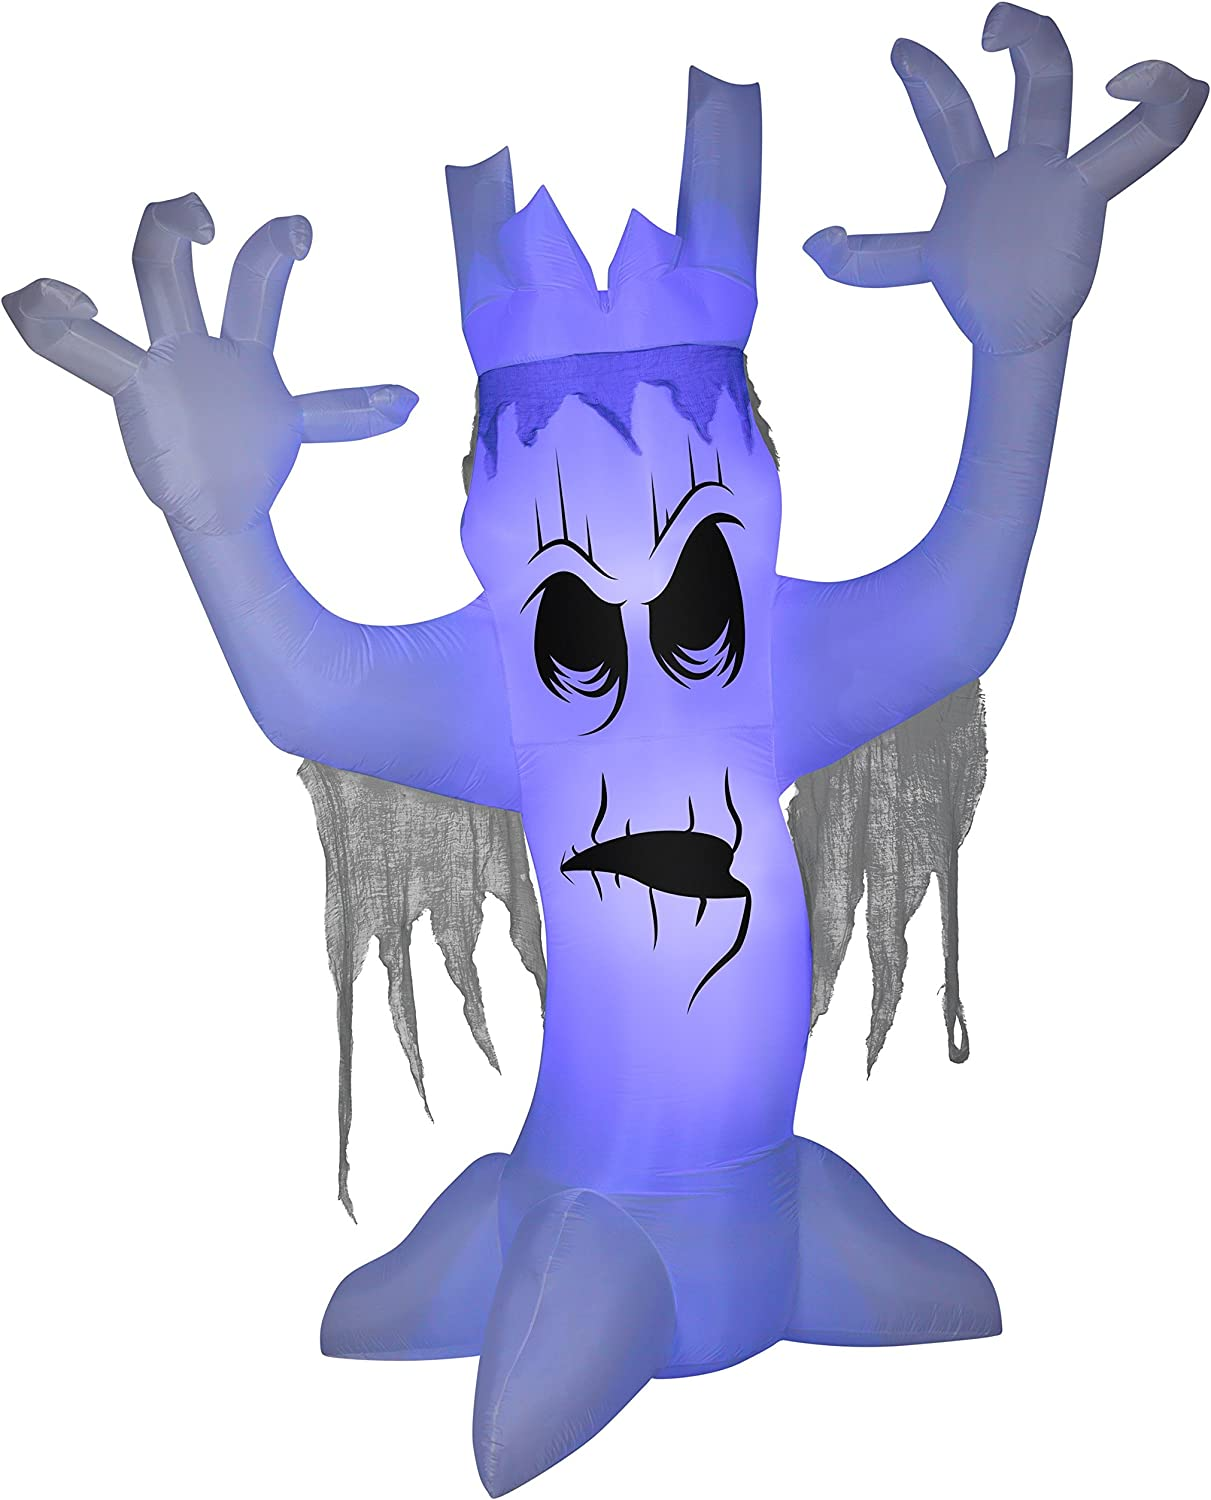 Gemmy 12' Giant New Shipping Popular brand in the world Free Airblown Scary Tree Halloween Inflatable